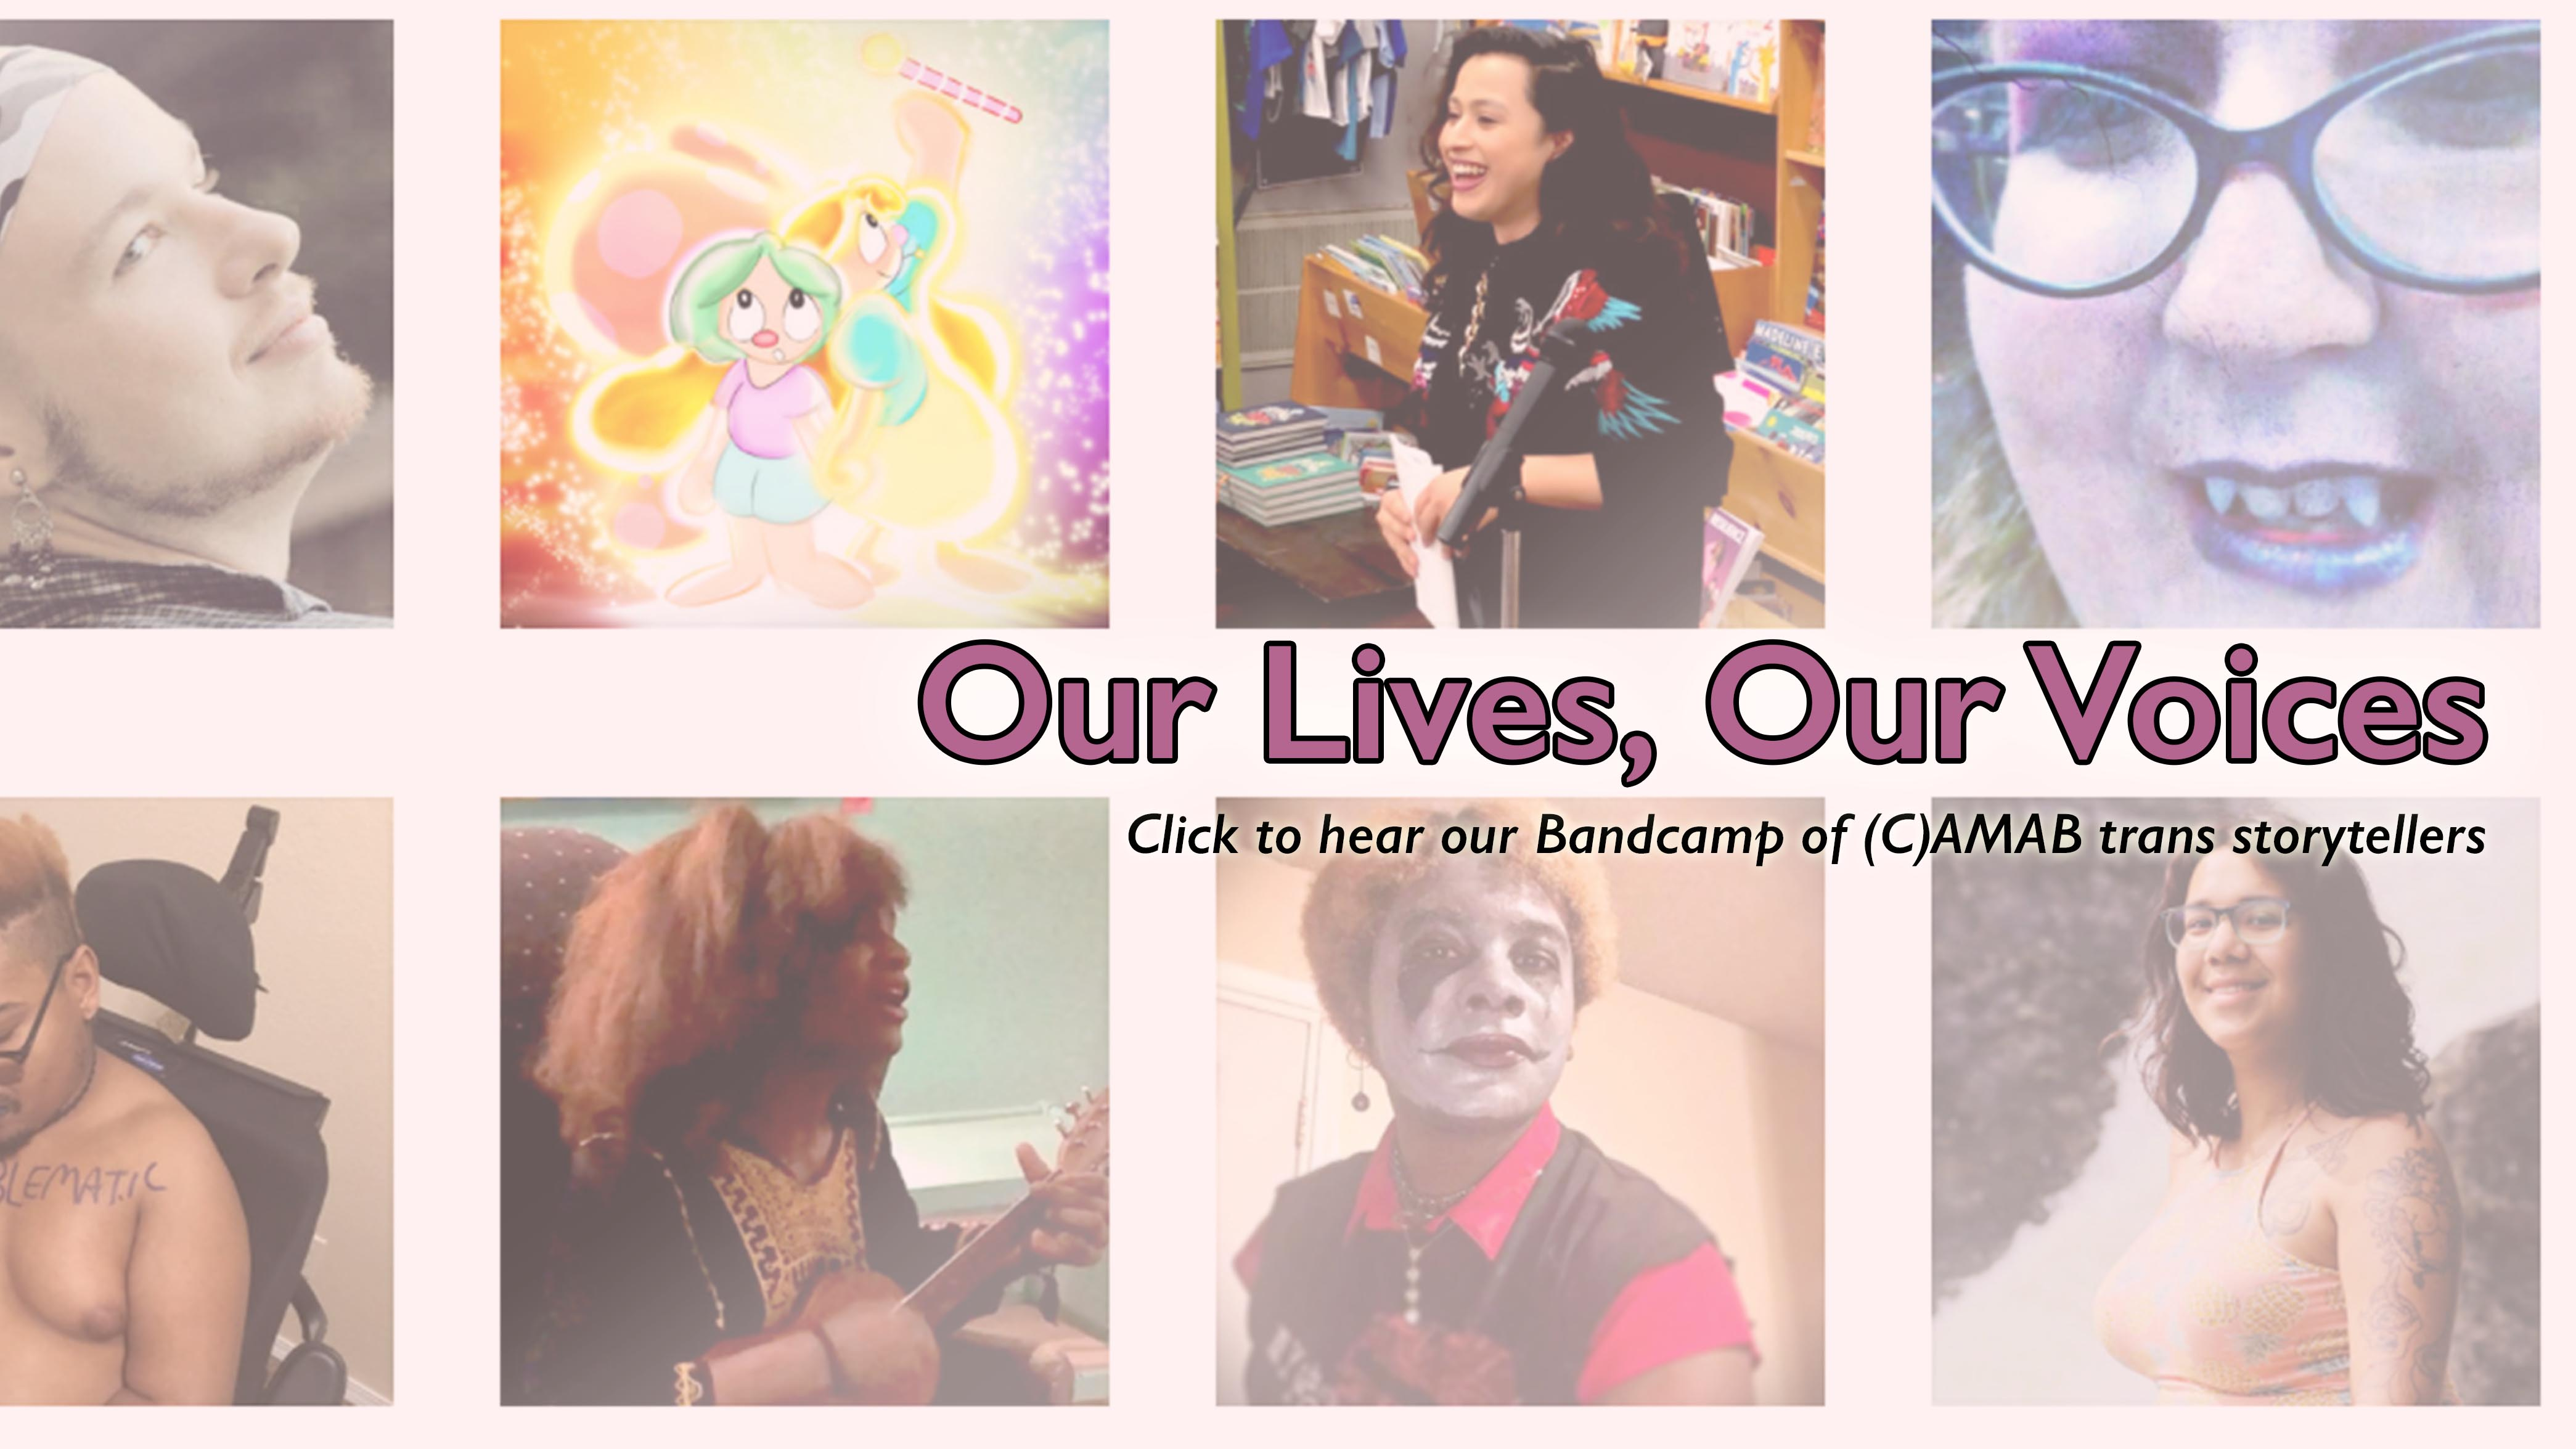 Check out our Bandcamp of (C)AMAB trans storytellers. Click here to learn more.